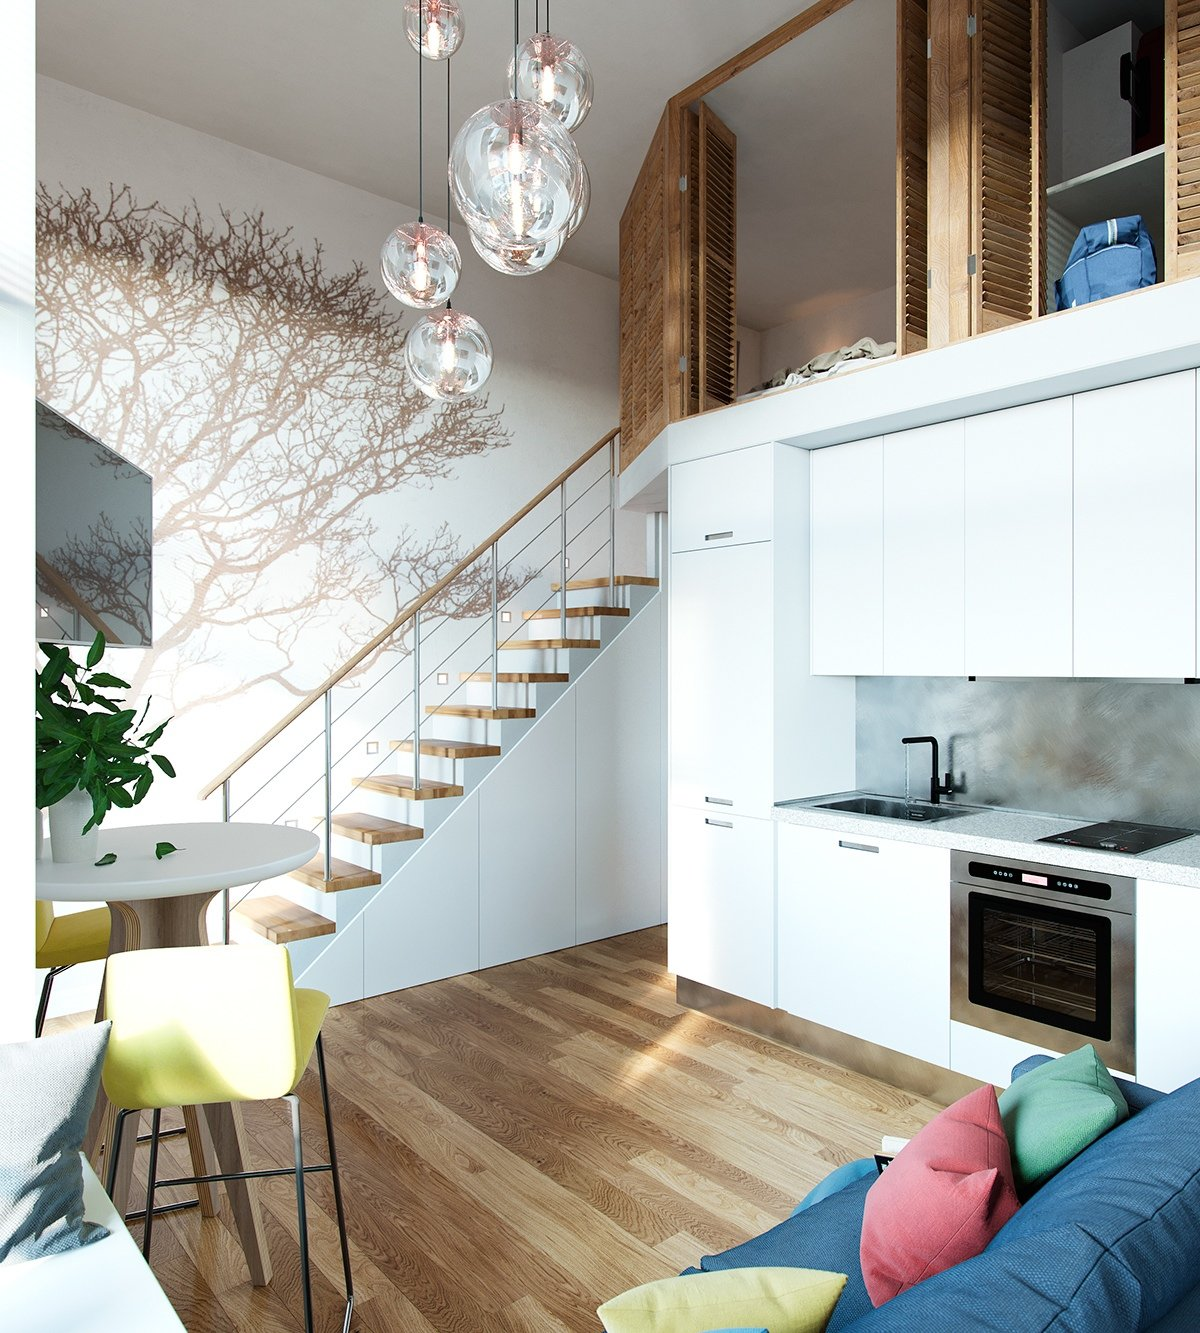 small homes that use lofts to gain more floor space - Design For Small Homes